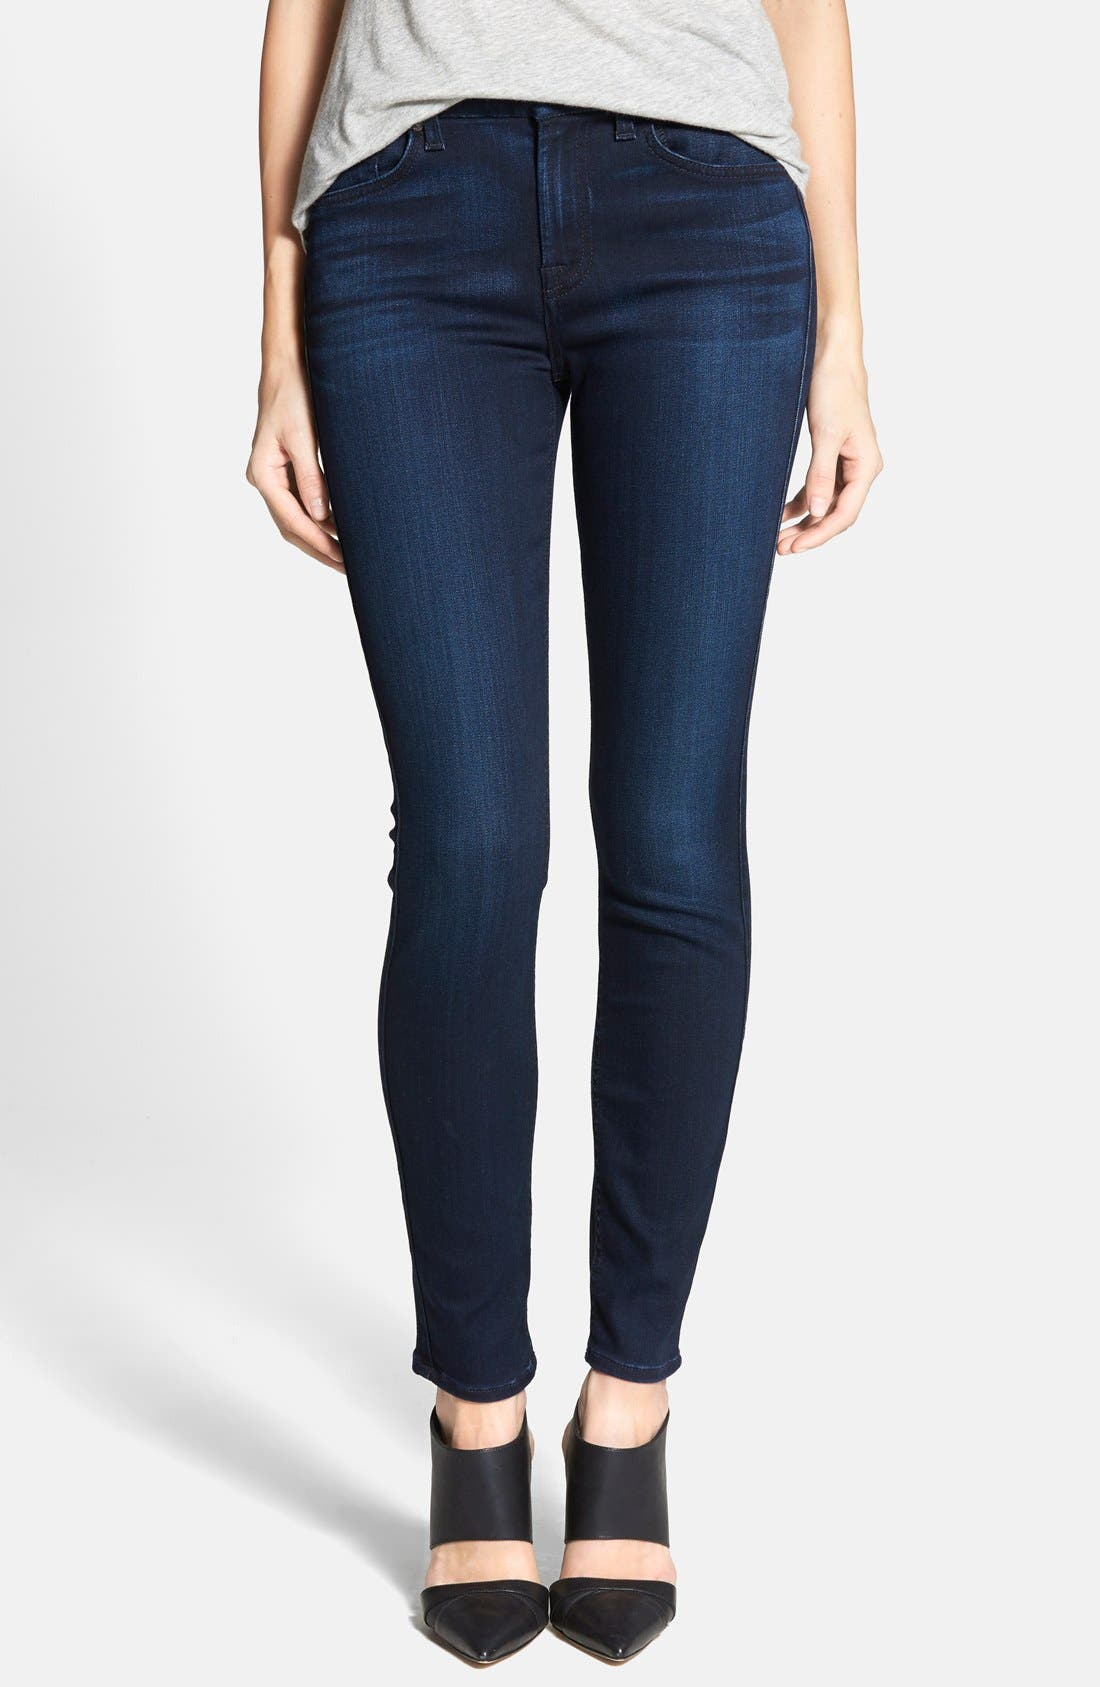 Main Image - 7 For All Mankind® 'The Ankle Skinny' Contour Jeans (Pristine Blue Black)